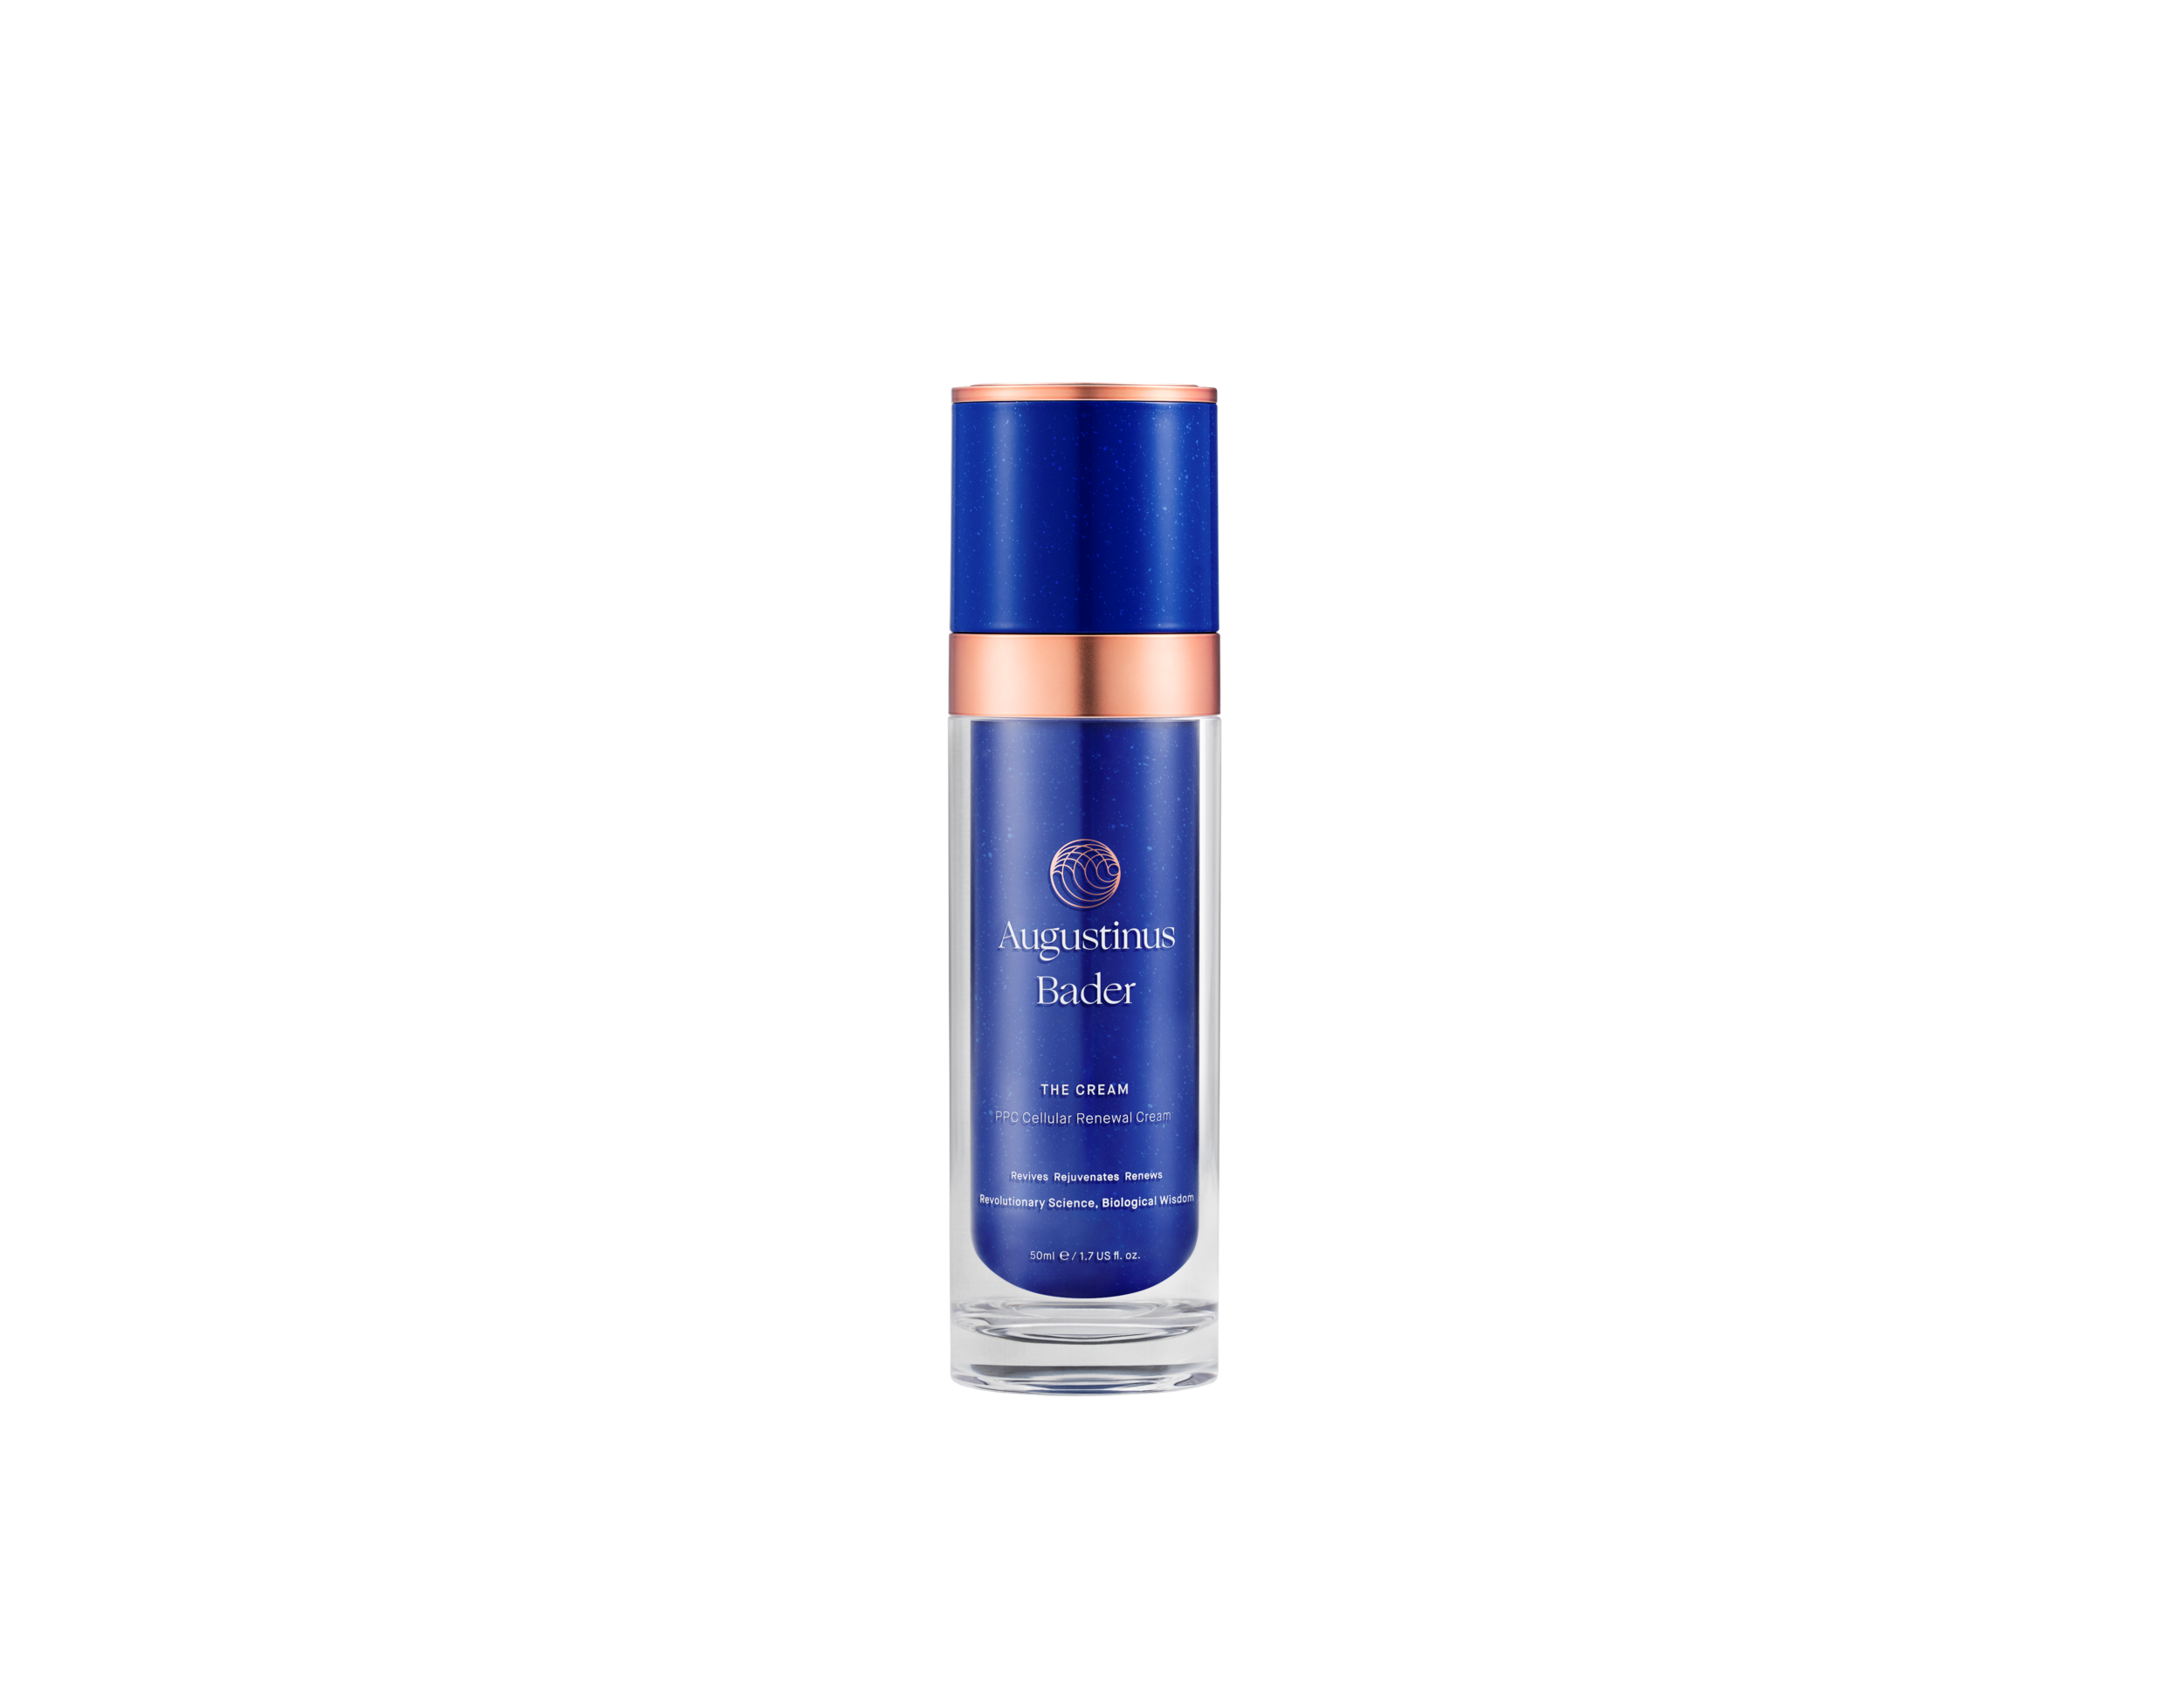 Augustinus Bader The Cream, Available at Augustinus Bader